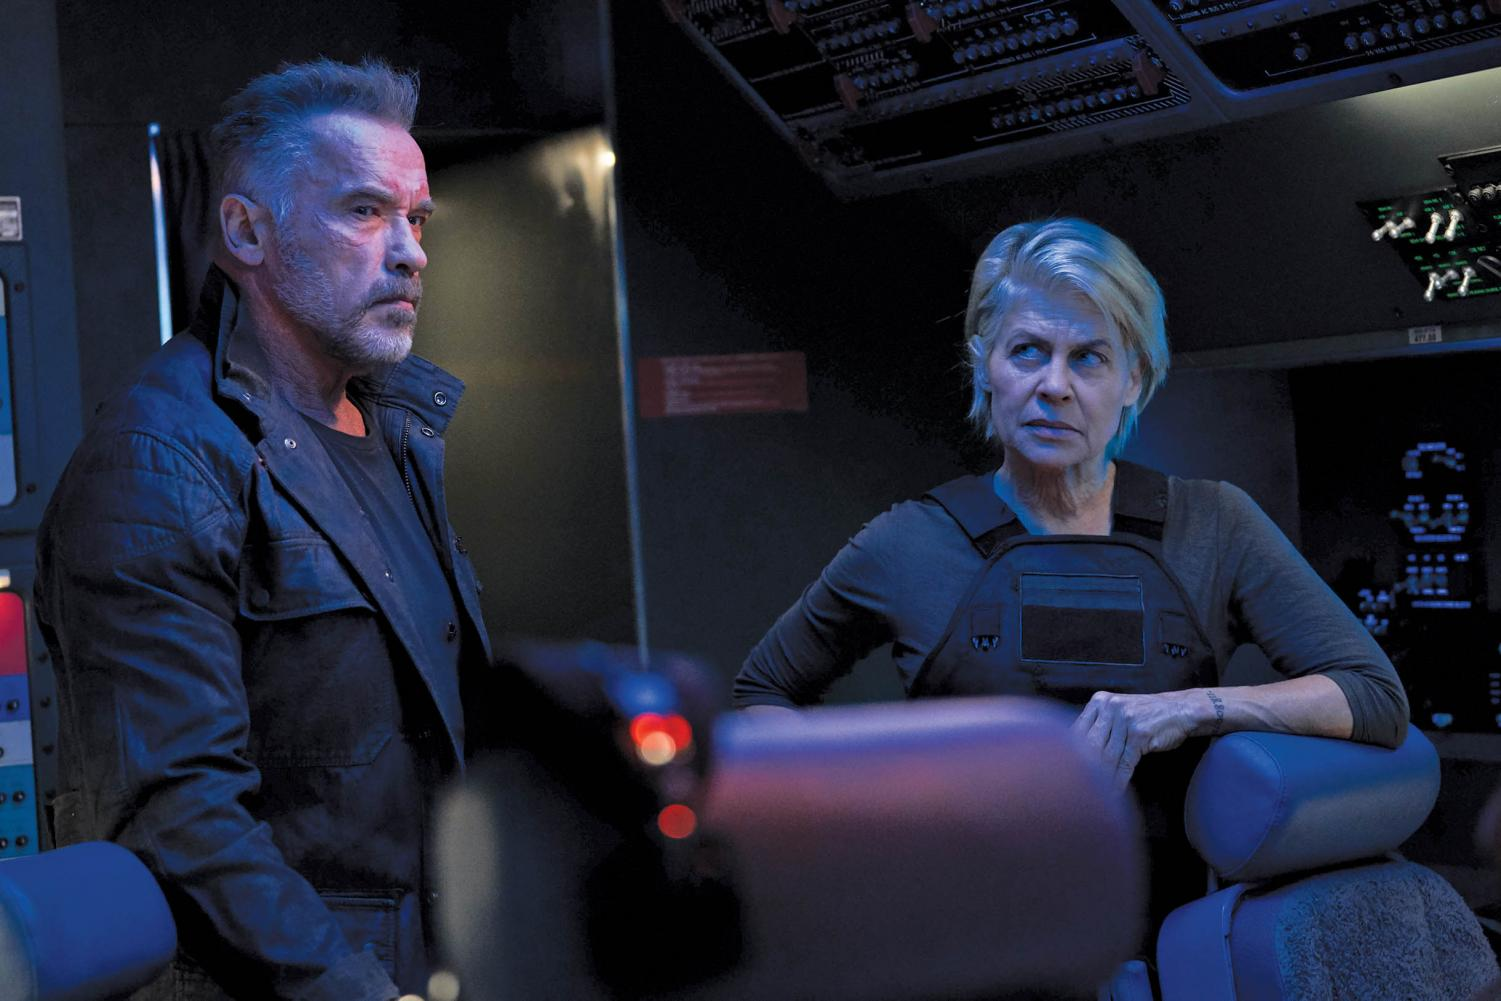 Arnold Schwarzenegger (left) and Linda Hamilton are back together for 'Terminator: Dark Fate.' The movie has earned a 71% on Rotten Tomatoes.